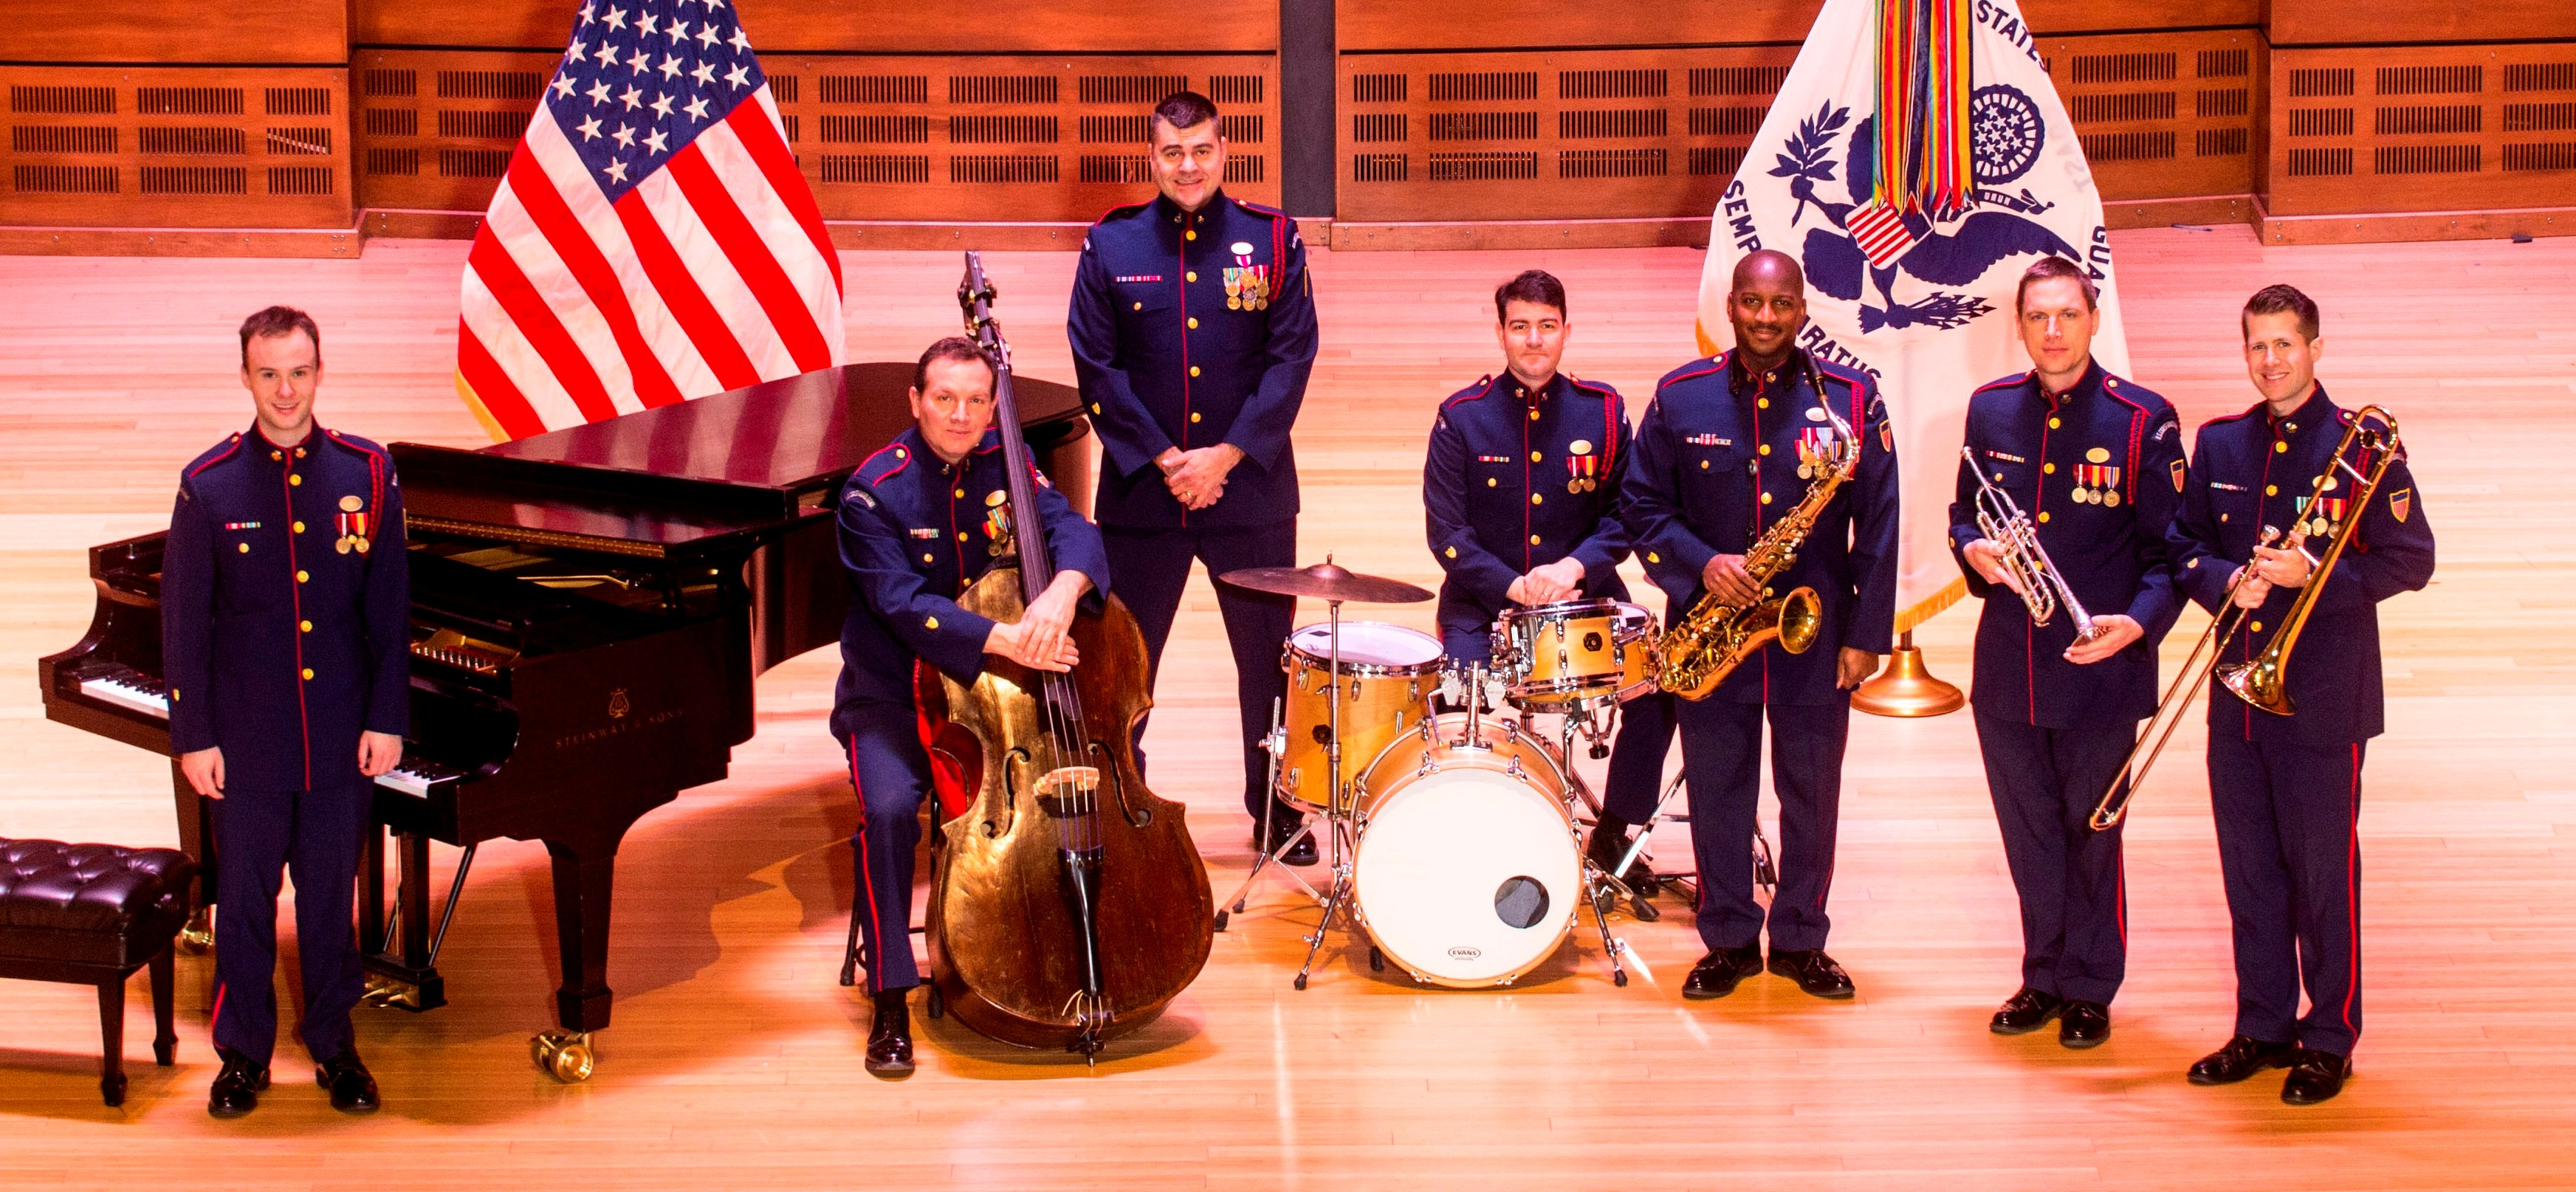 Dixieland Jazz Band at the Millenium Stage, Kennedy Center